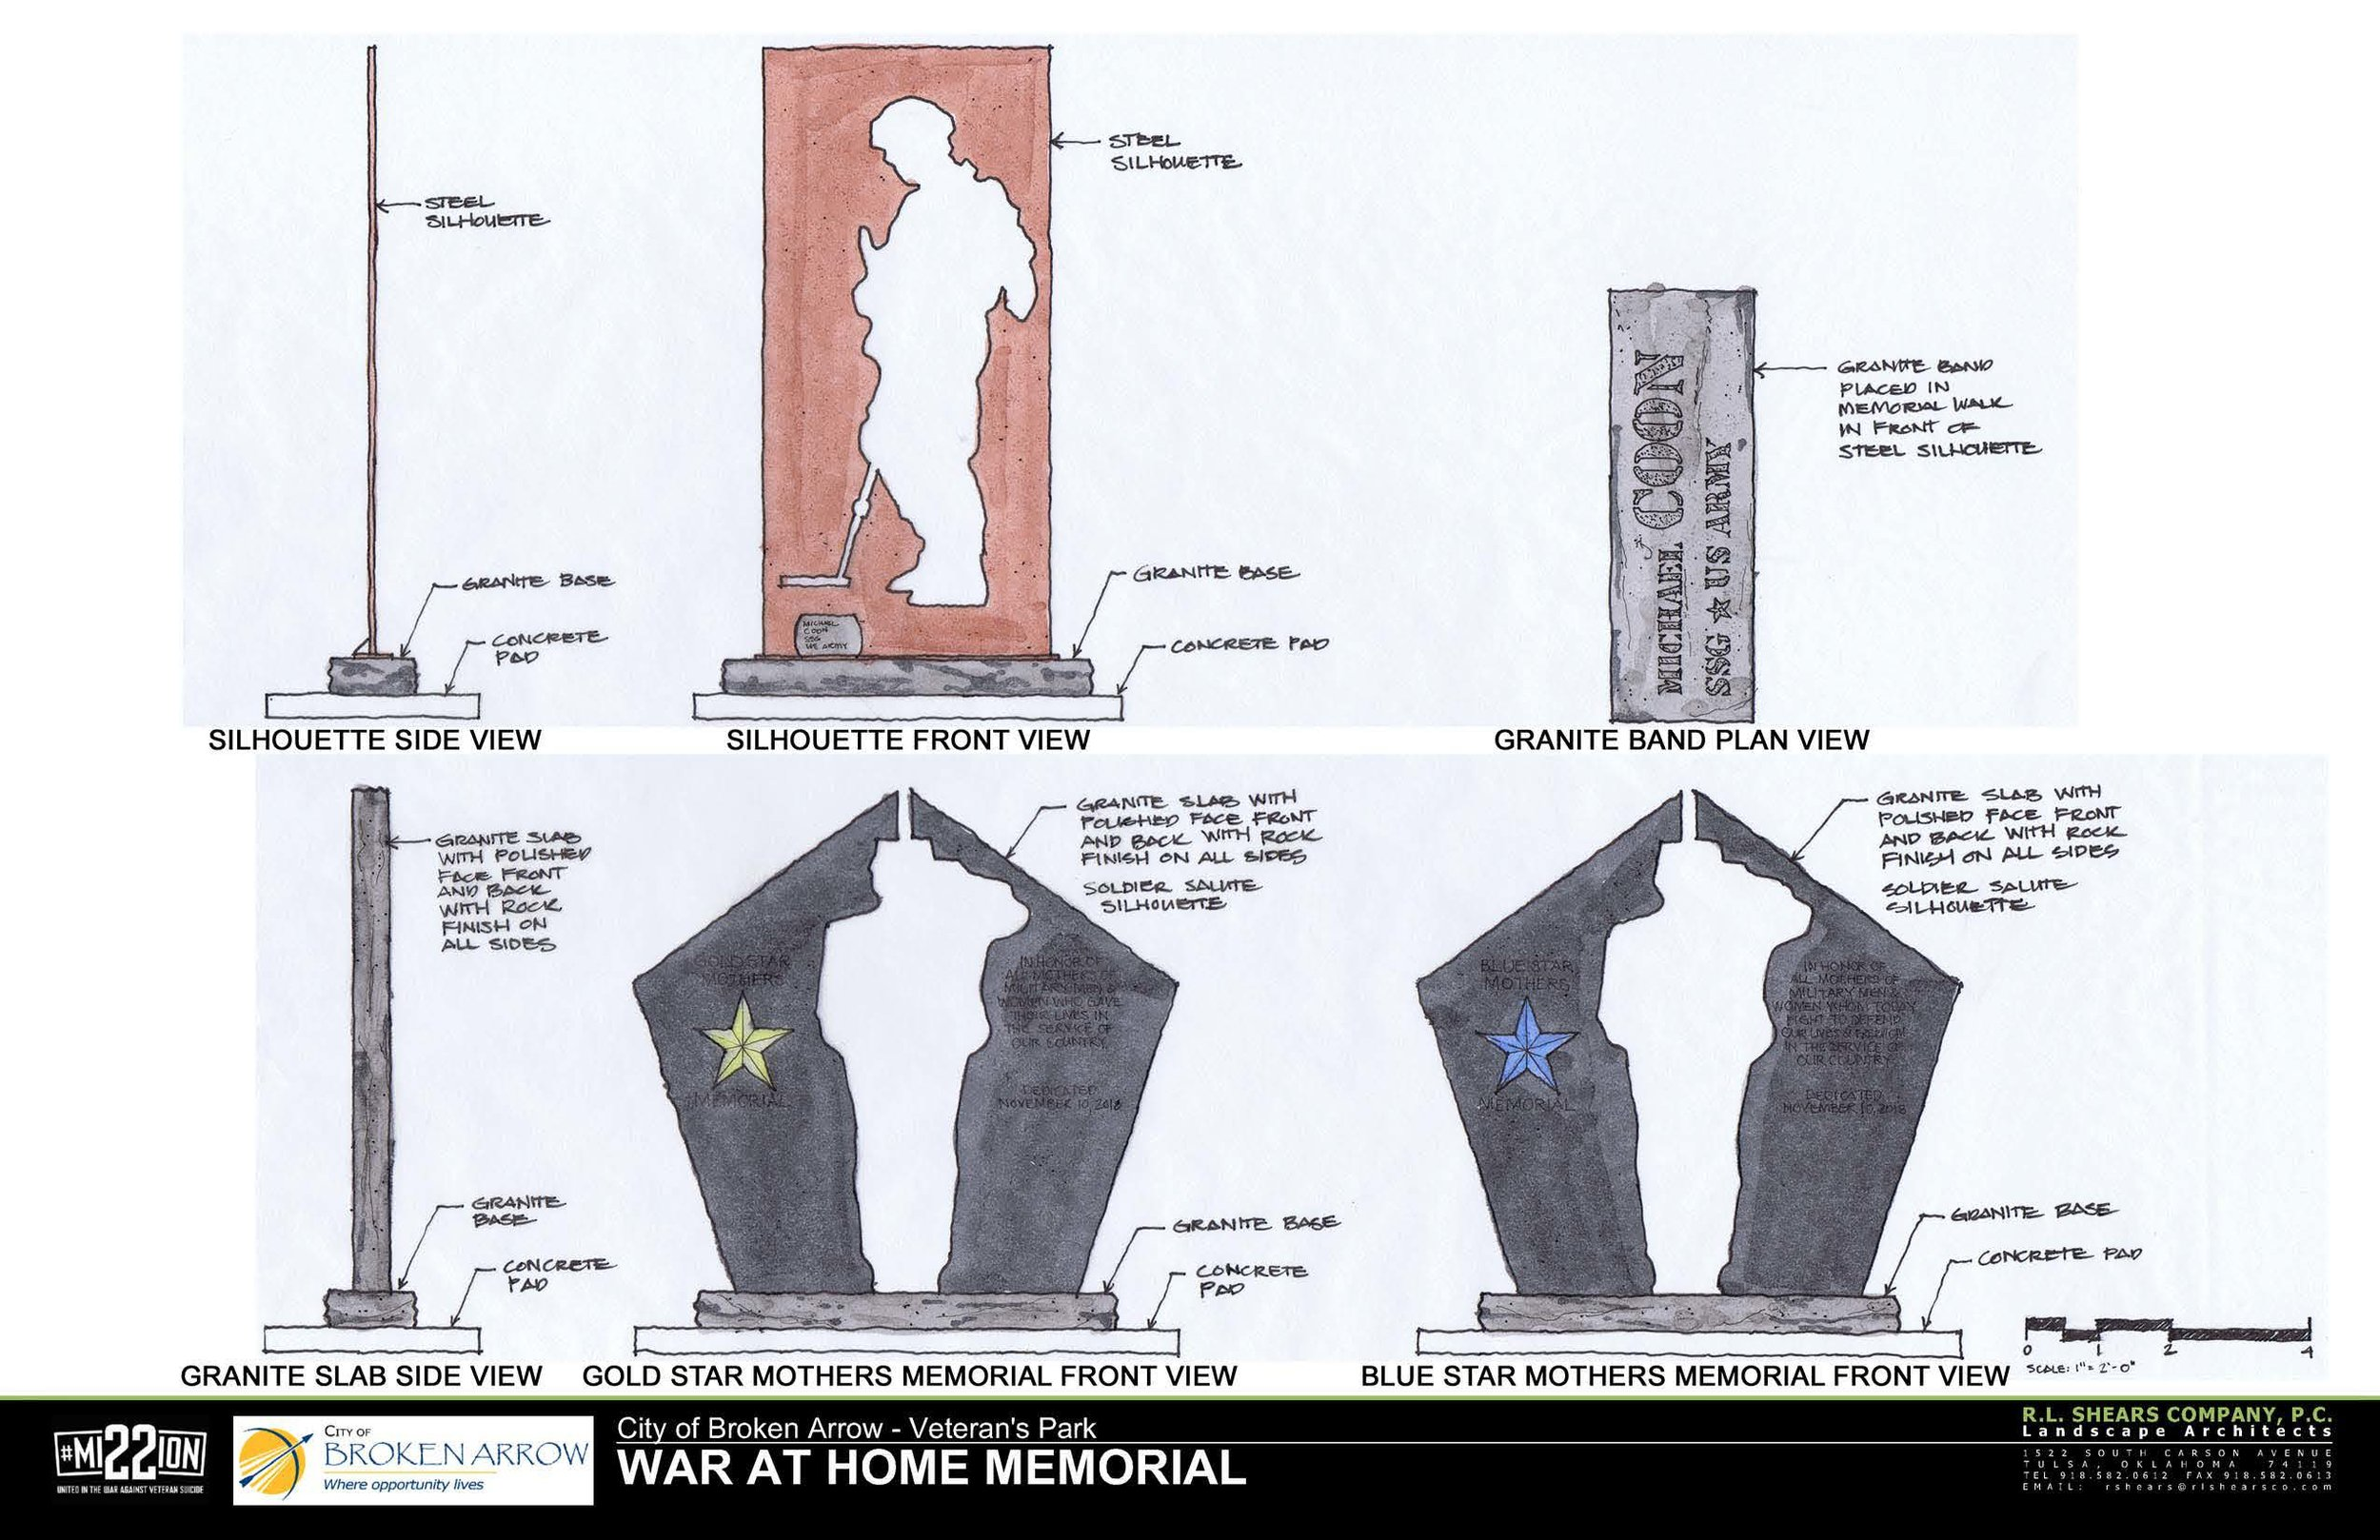 war at home memorial conceptual plans_Page_3.jpg